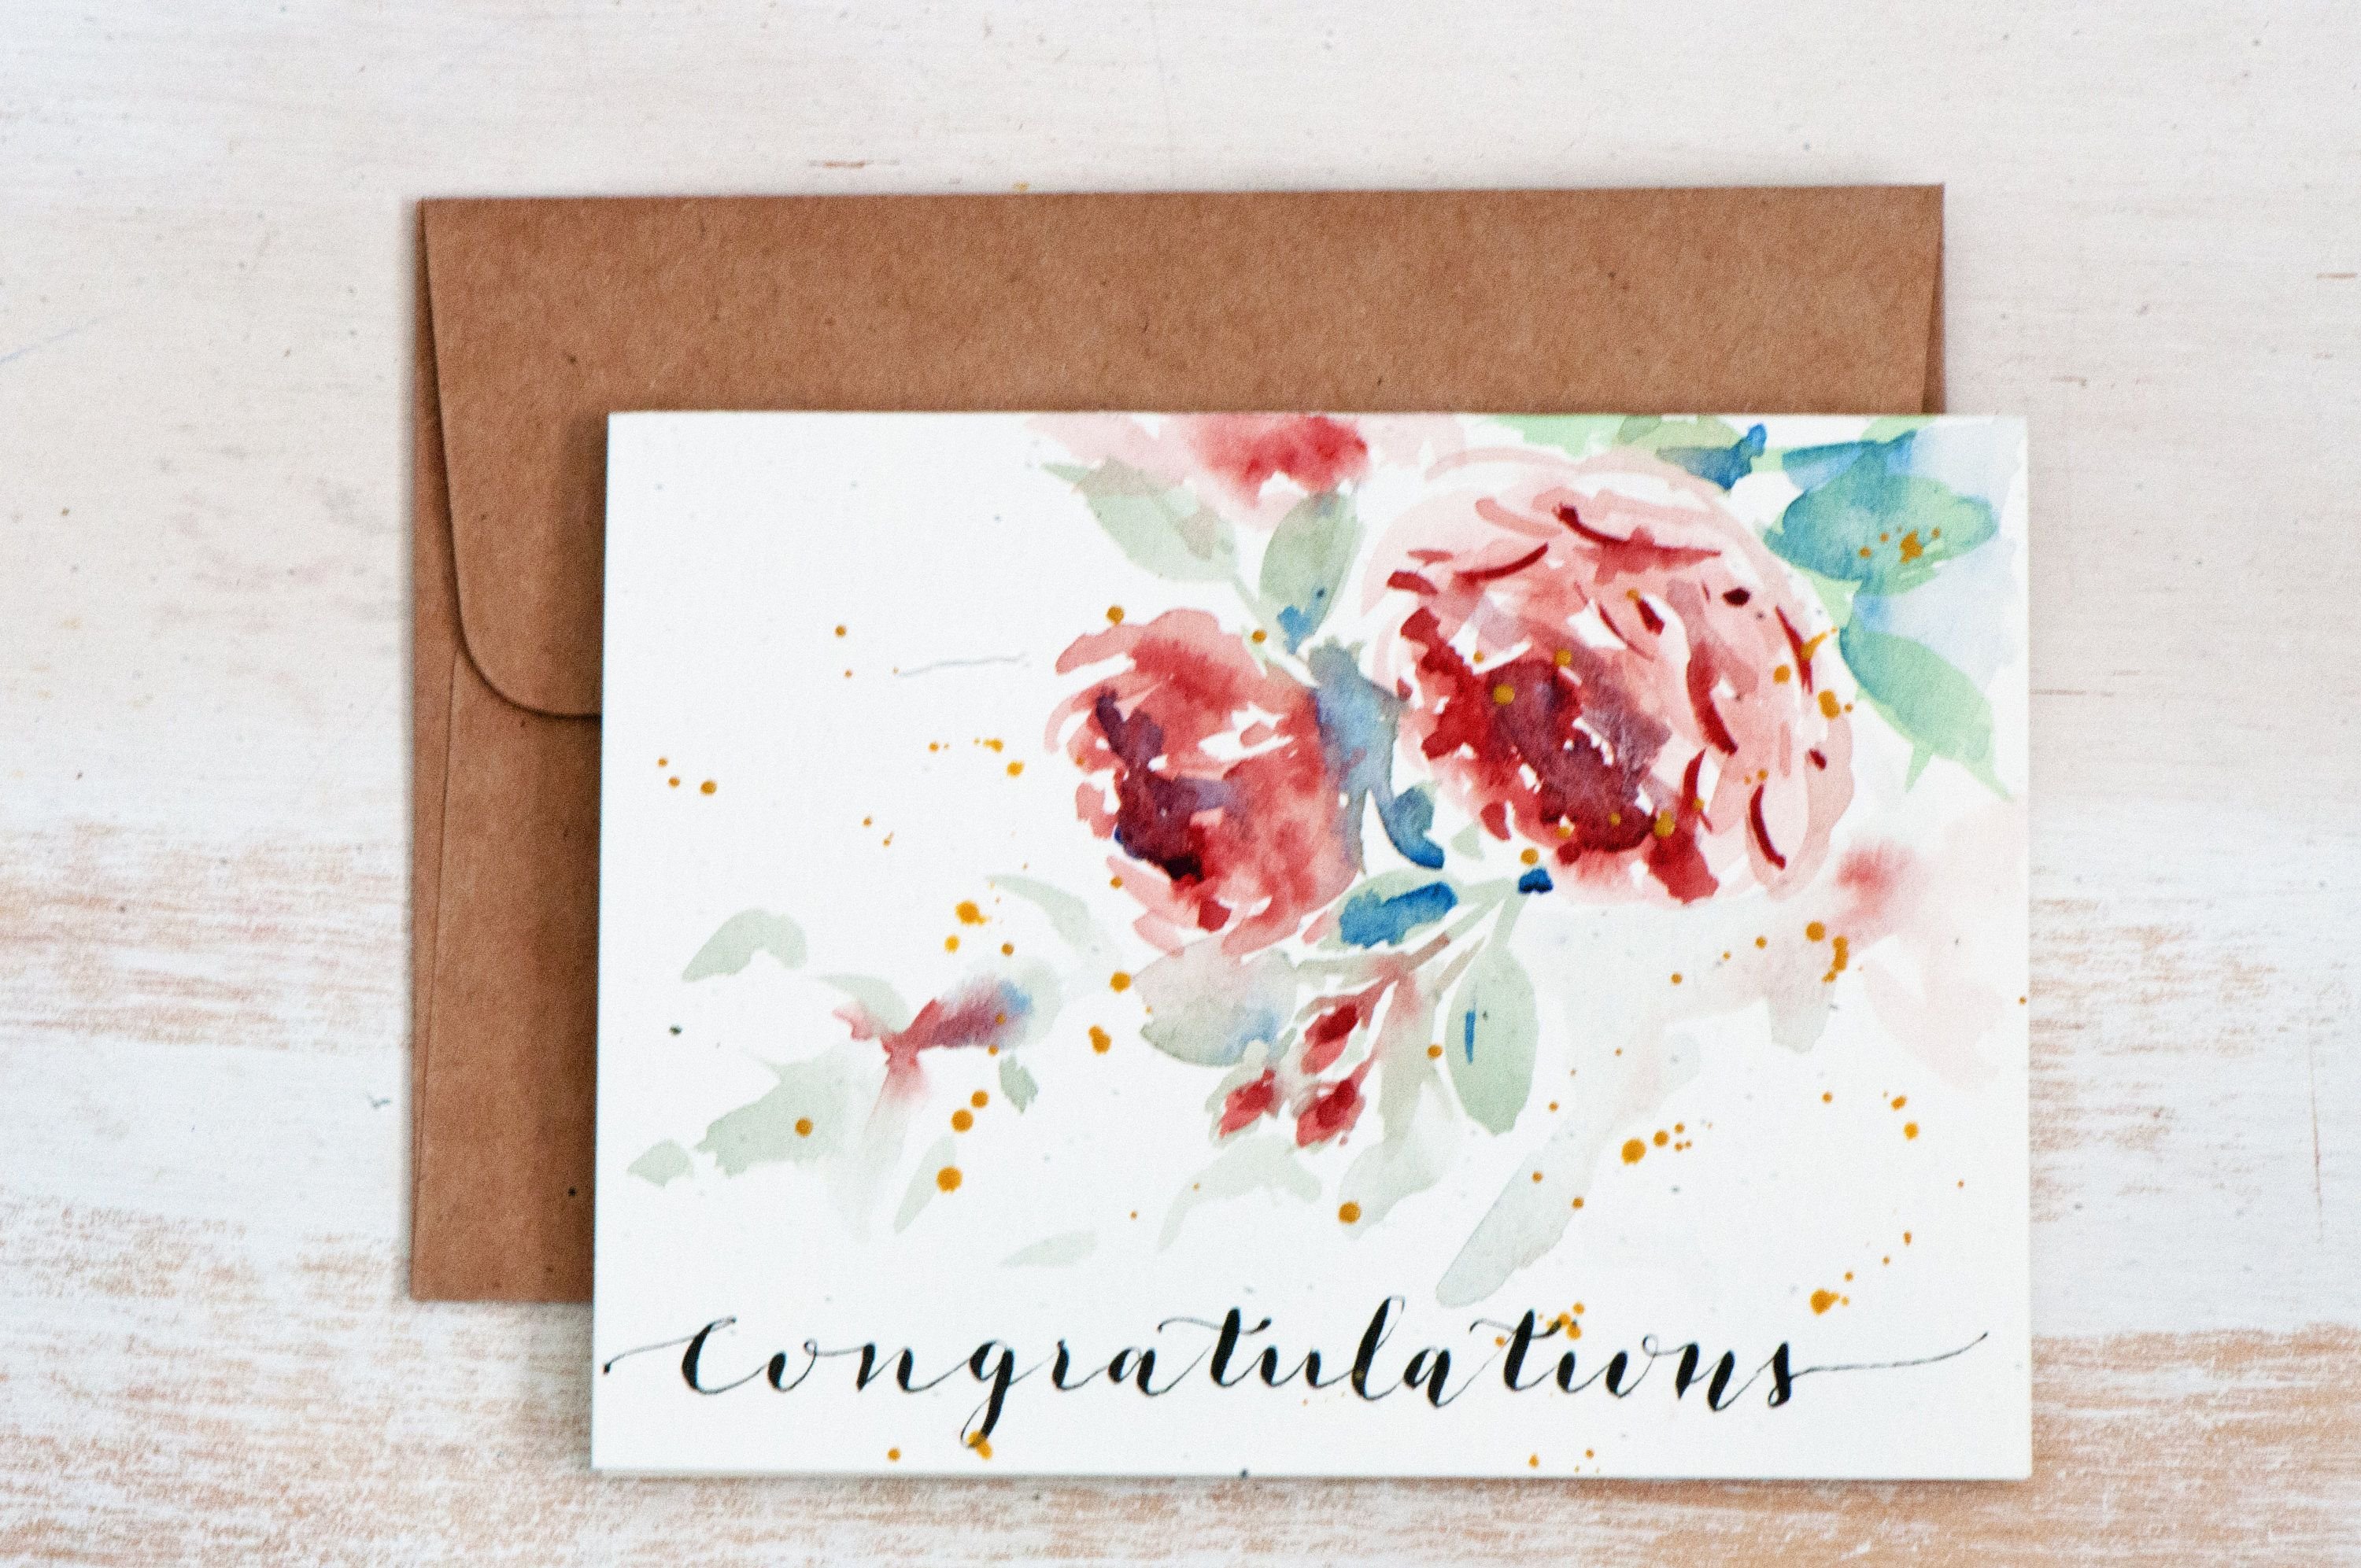 Congratulations Card Envelope LinerHandPainted Watercolor CardsHandlettered Wedding Day